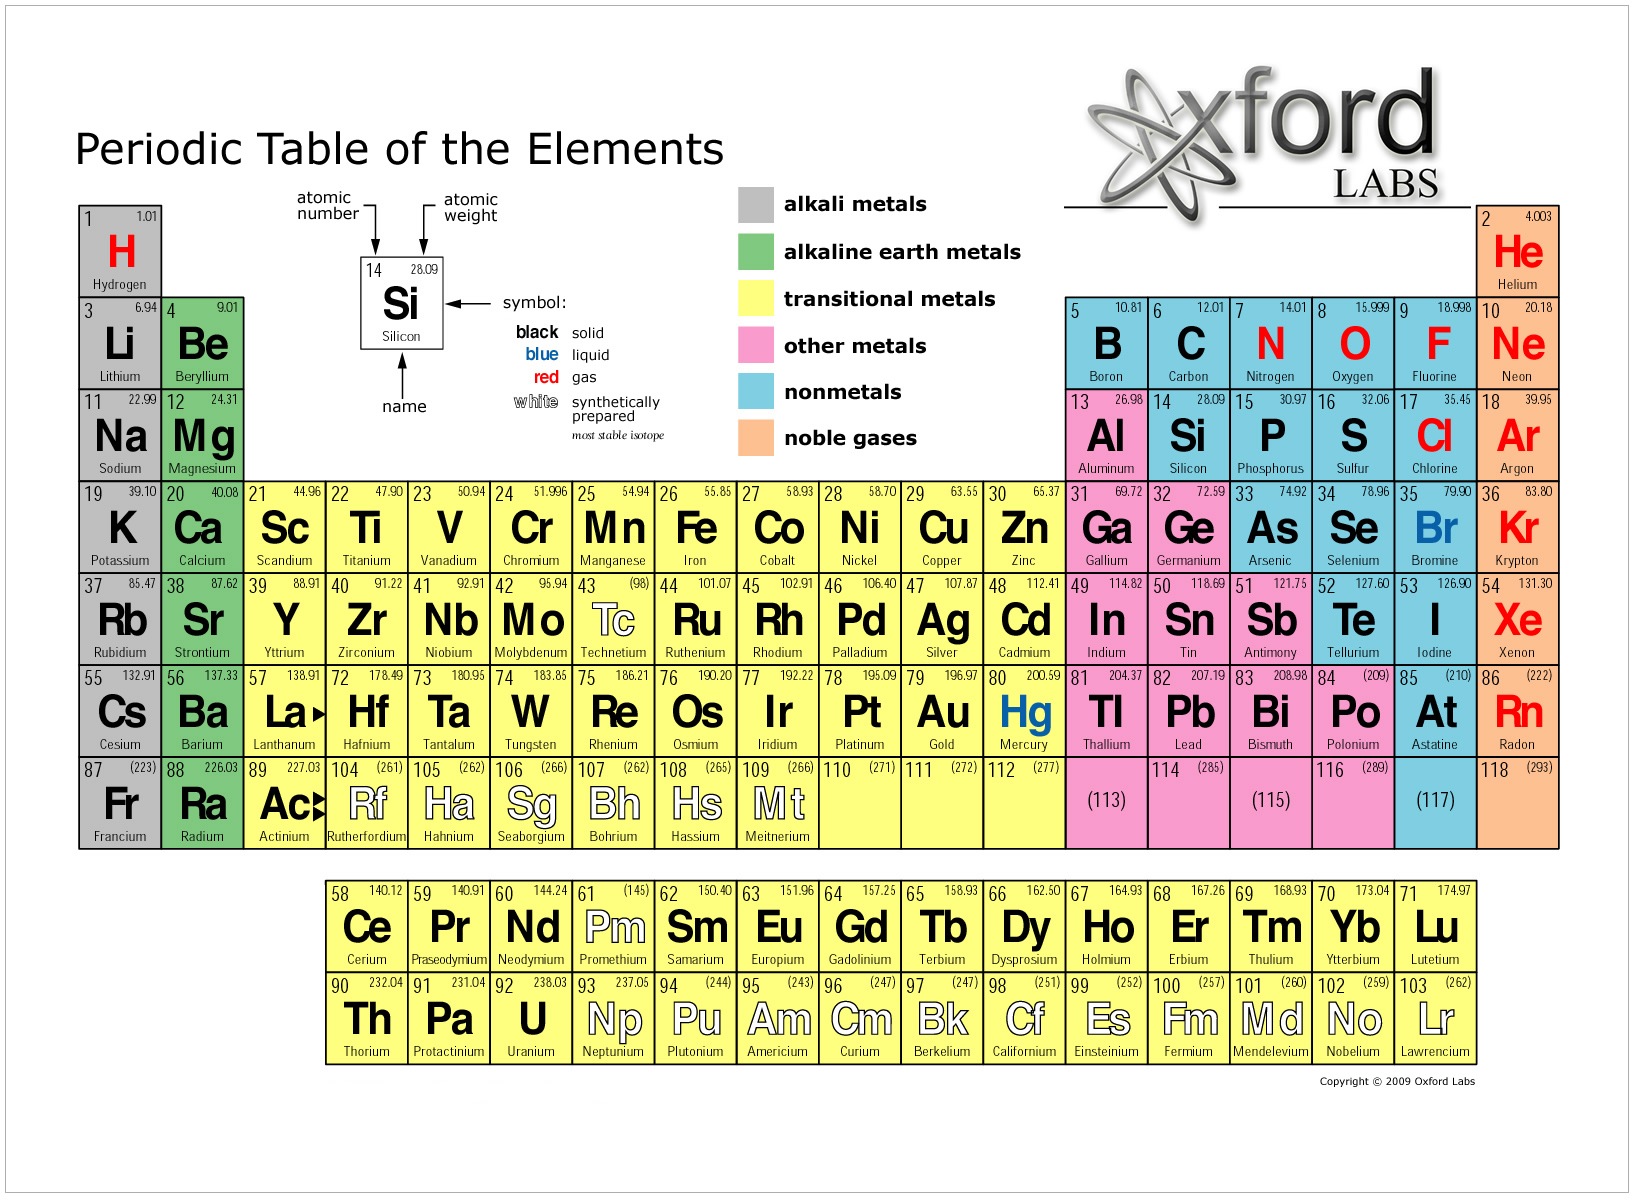 Periodic tables of the elements in american englishmichael canov amerg gamestrikefo Images